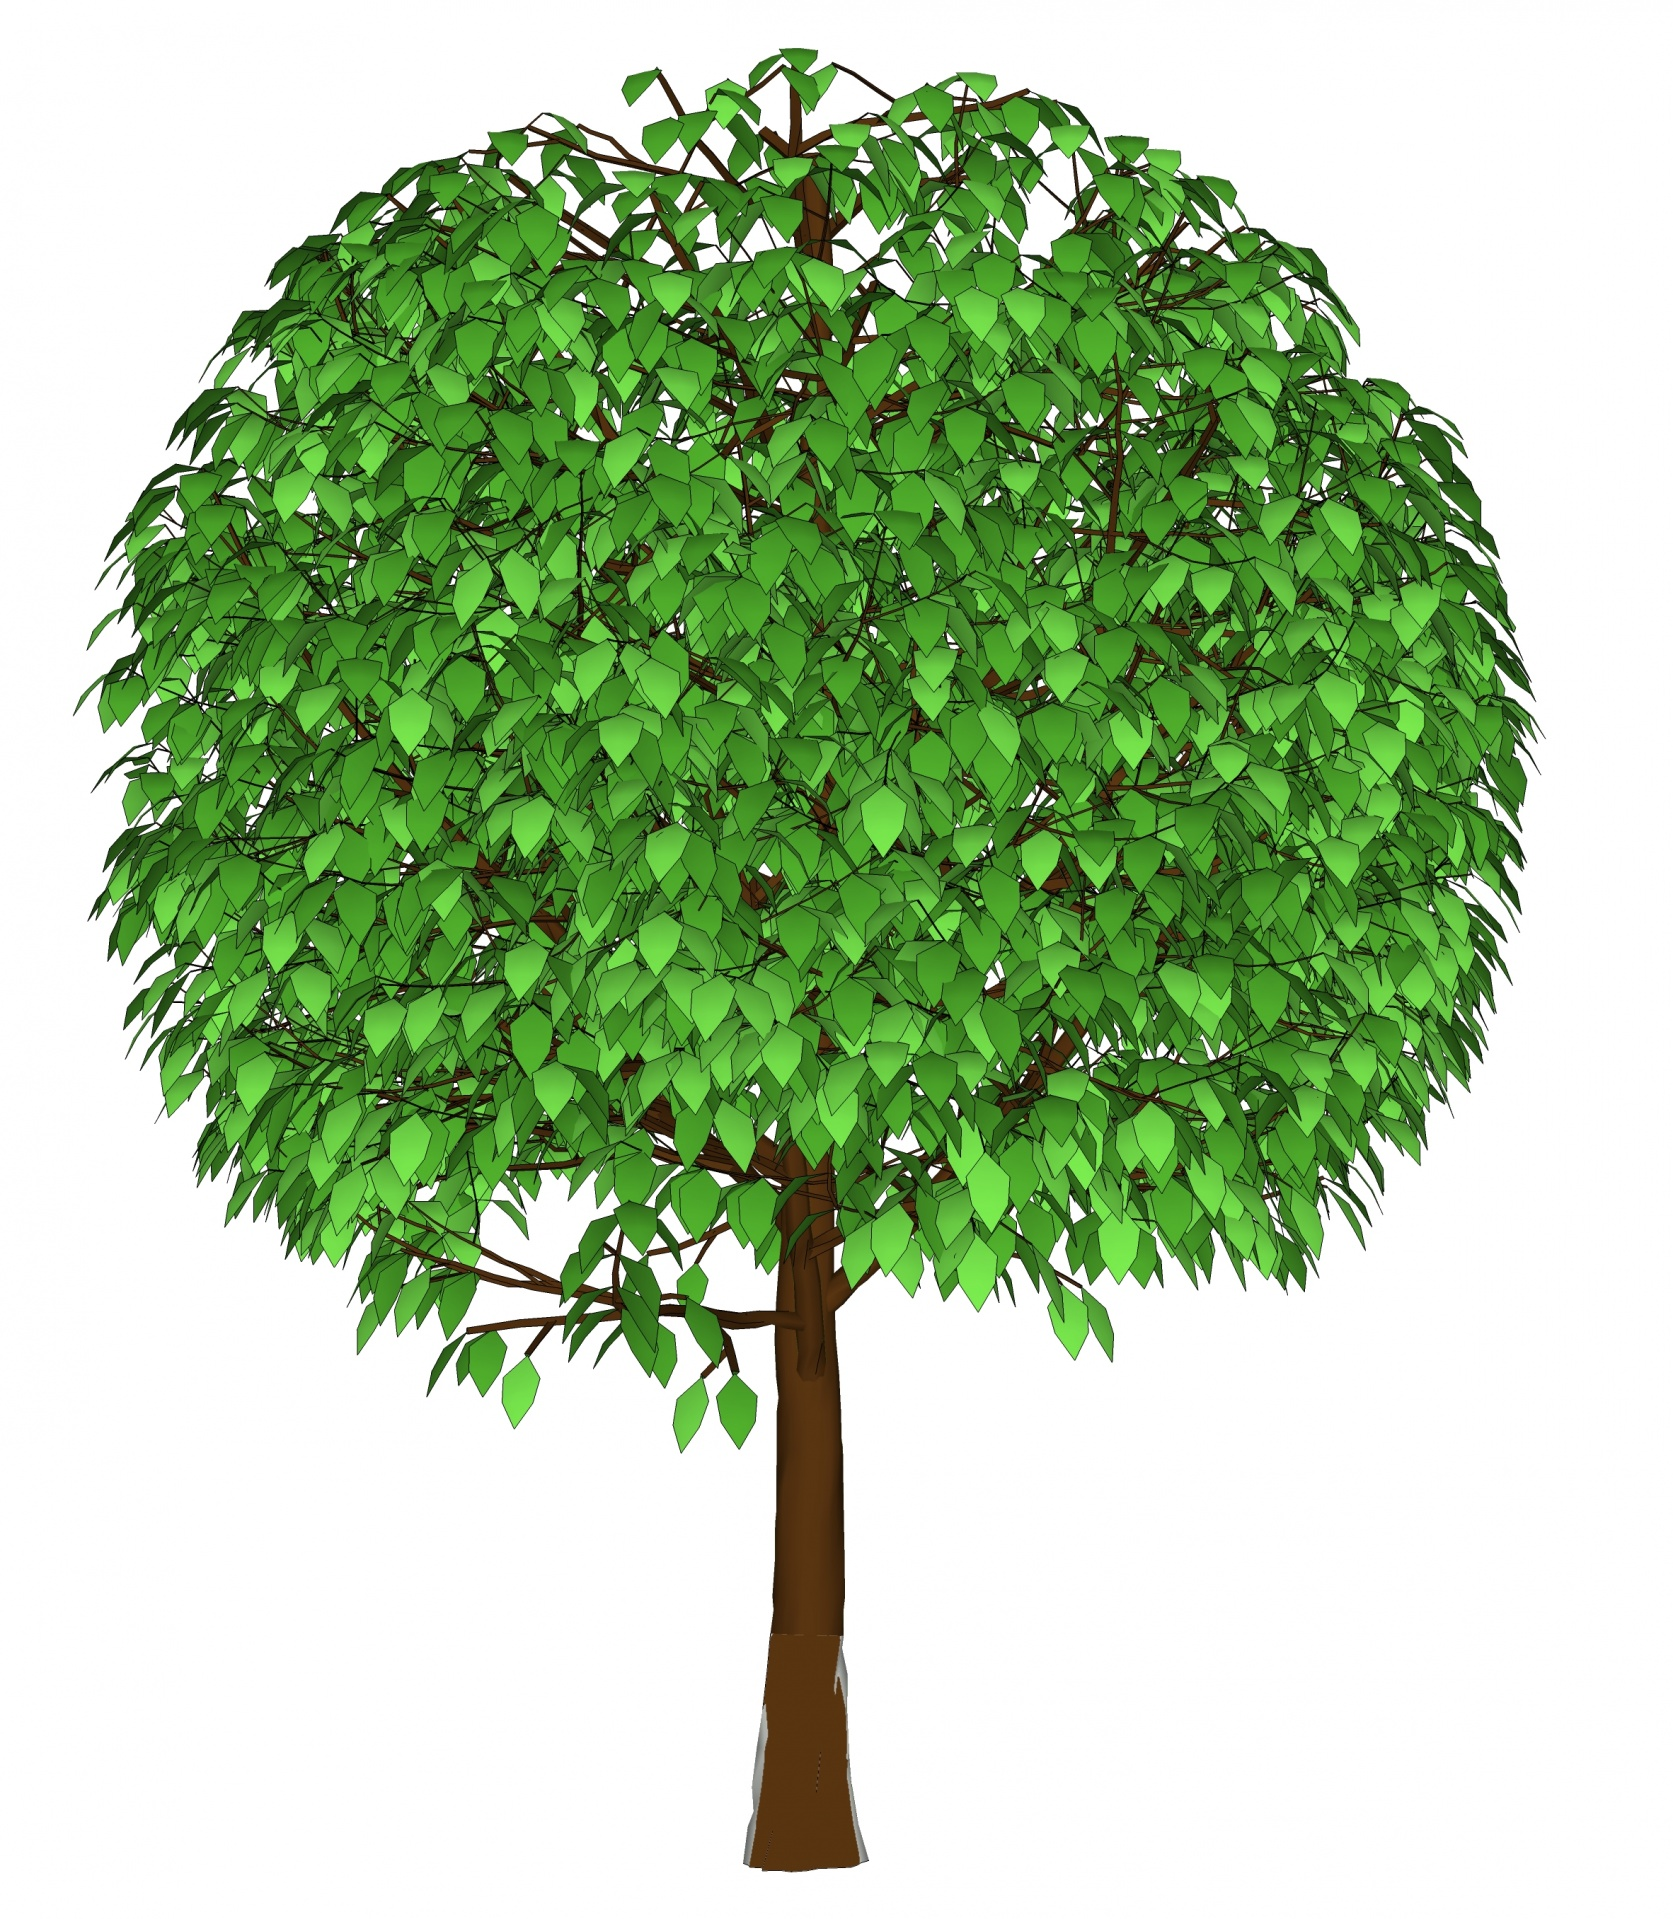 Drawing,tree,3d,green,leaves - free photo from needpix com